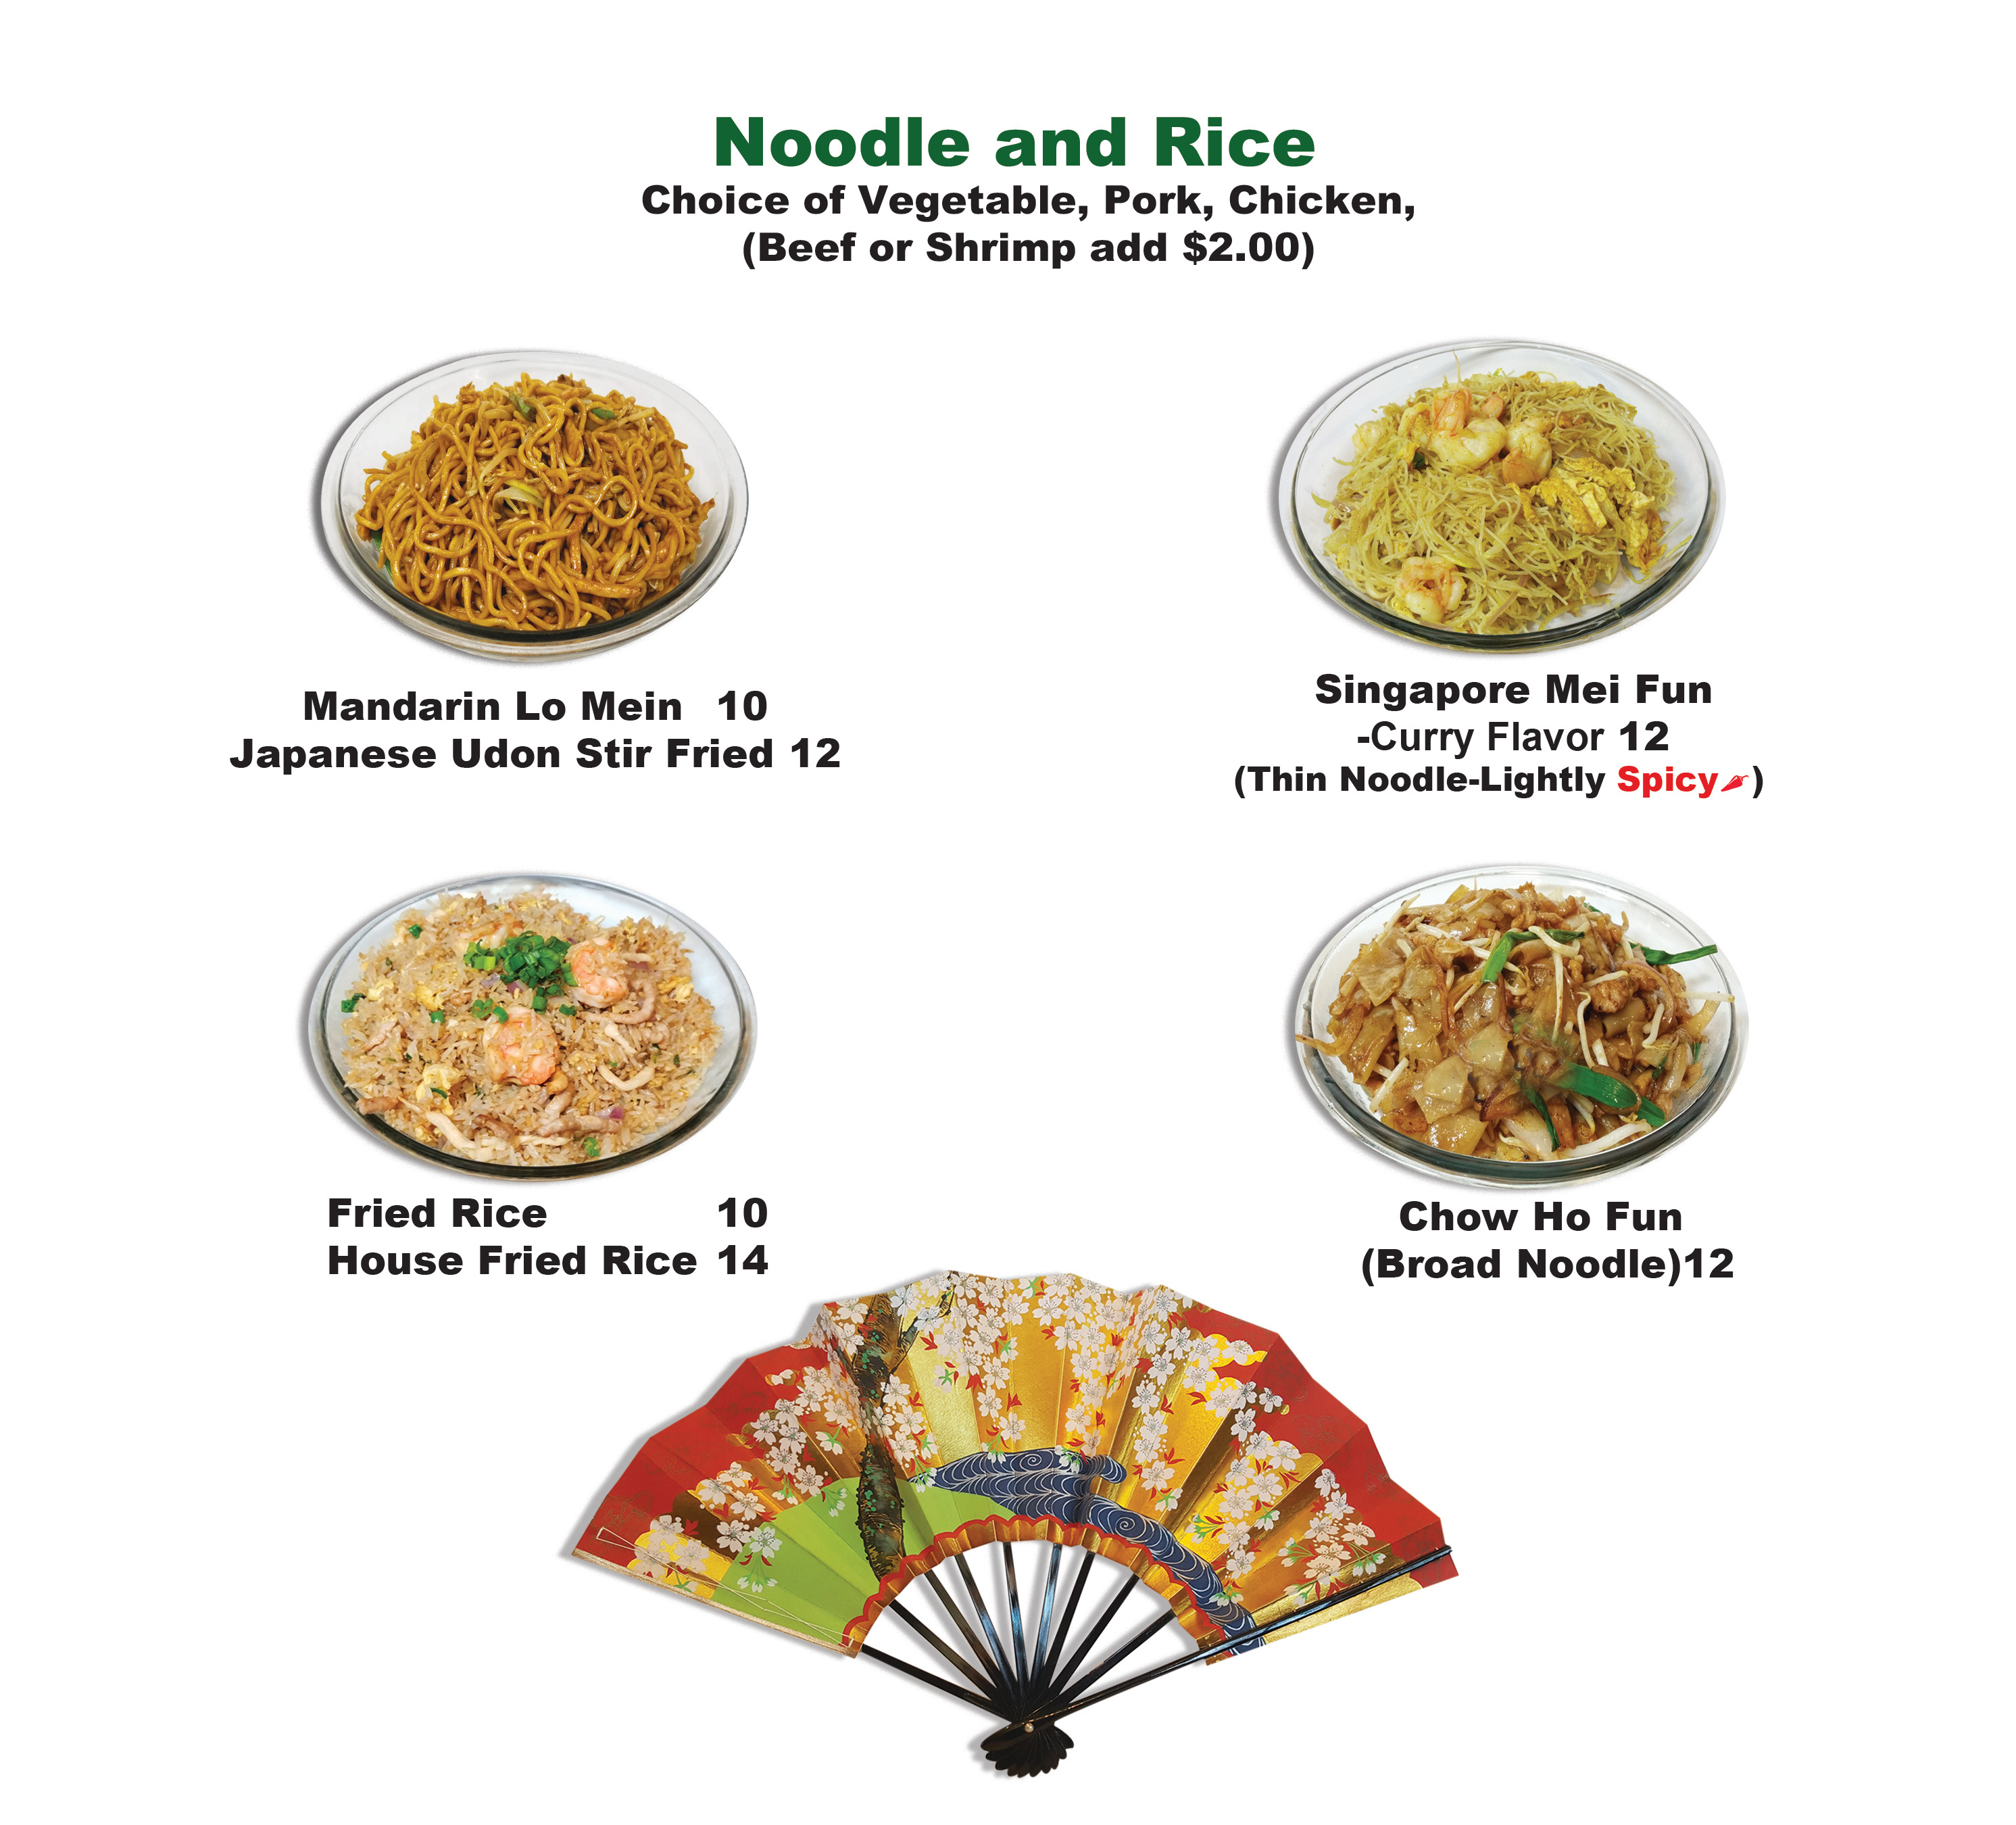 Noodle and Rice